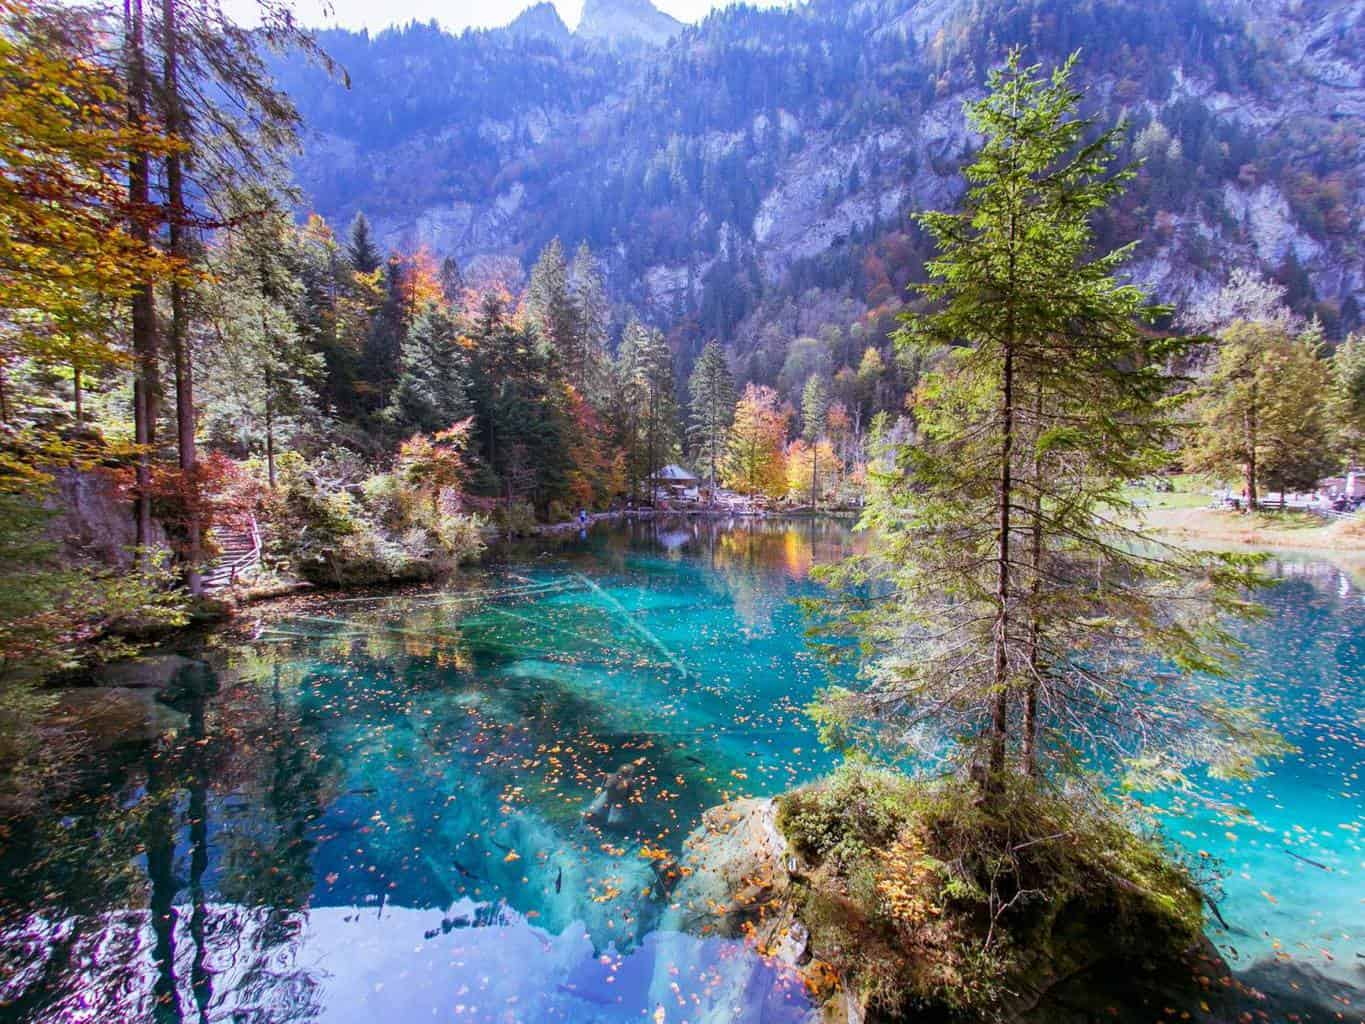 Autumn Views of Blausee The Stunning Blue Lake in Switzerland